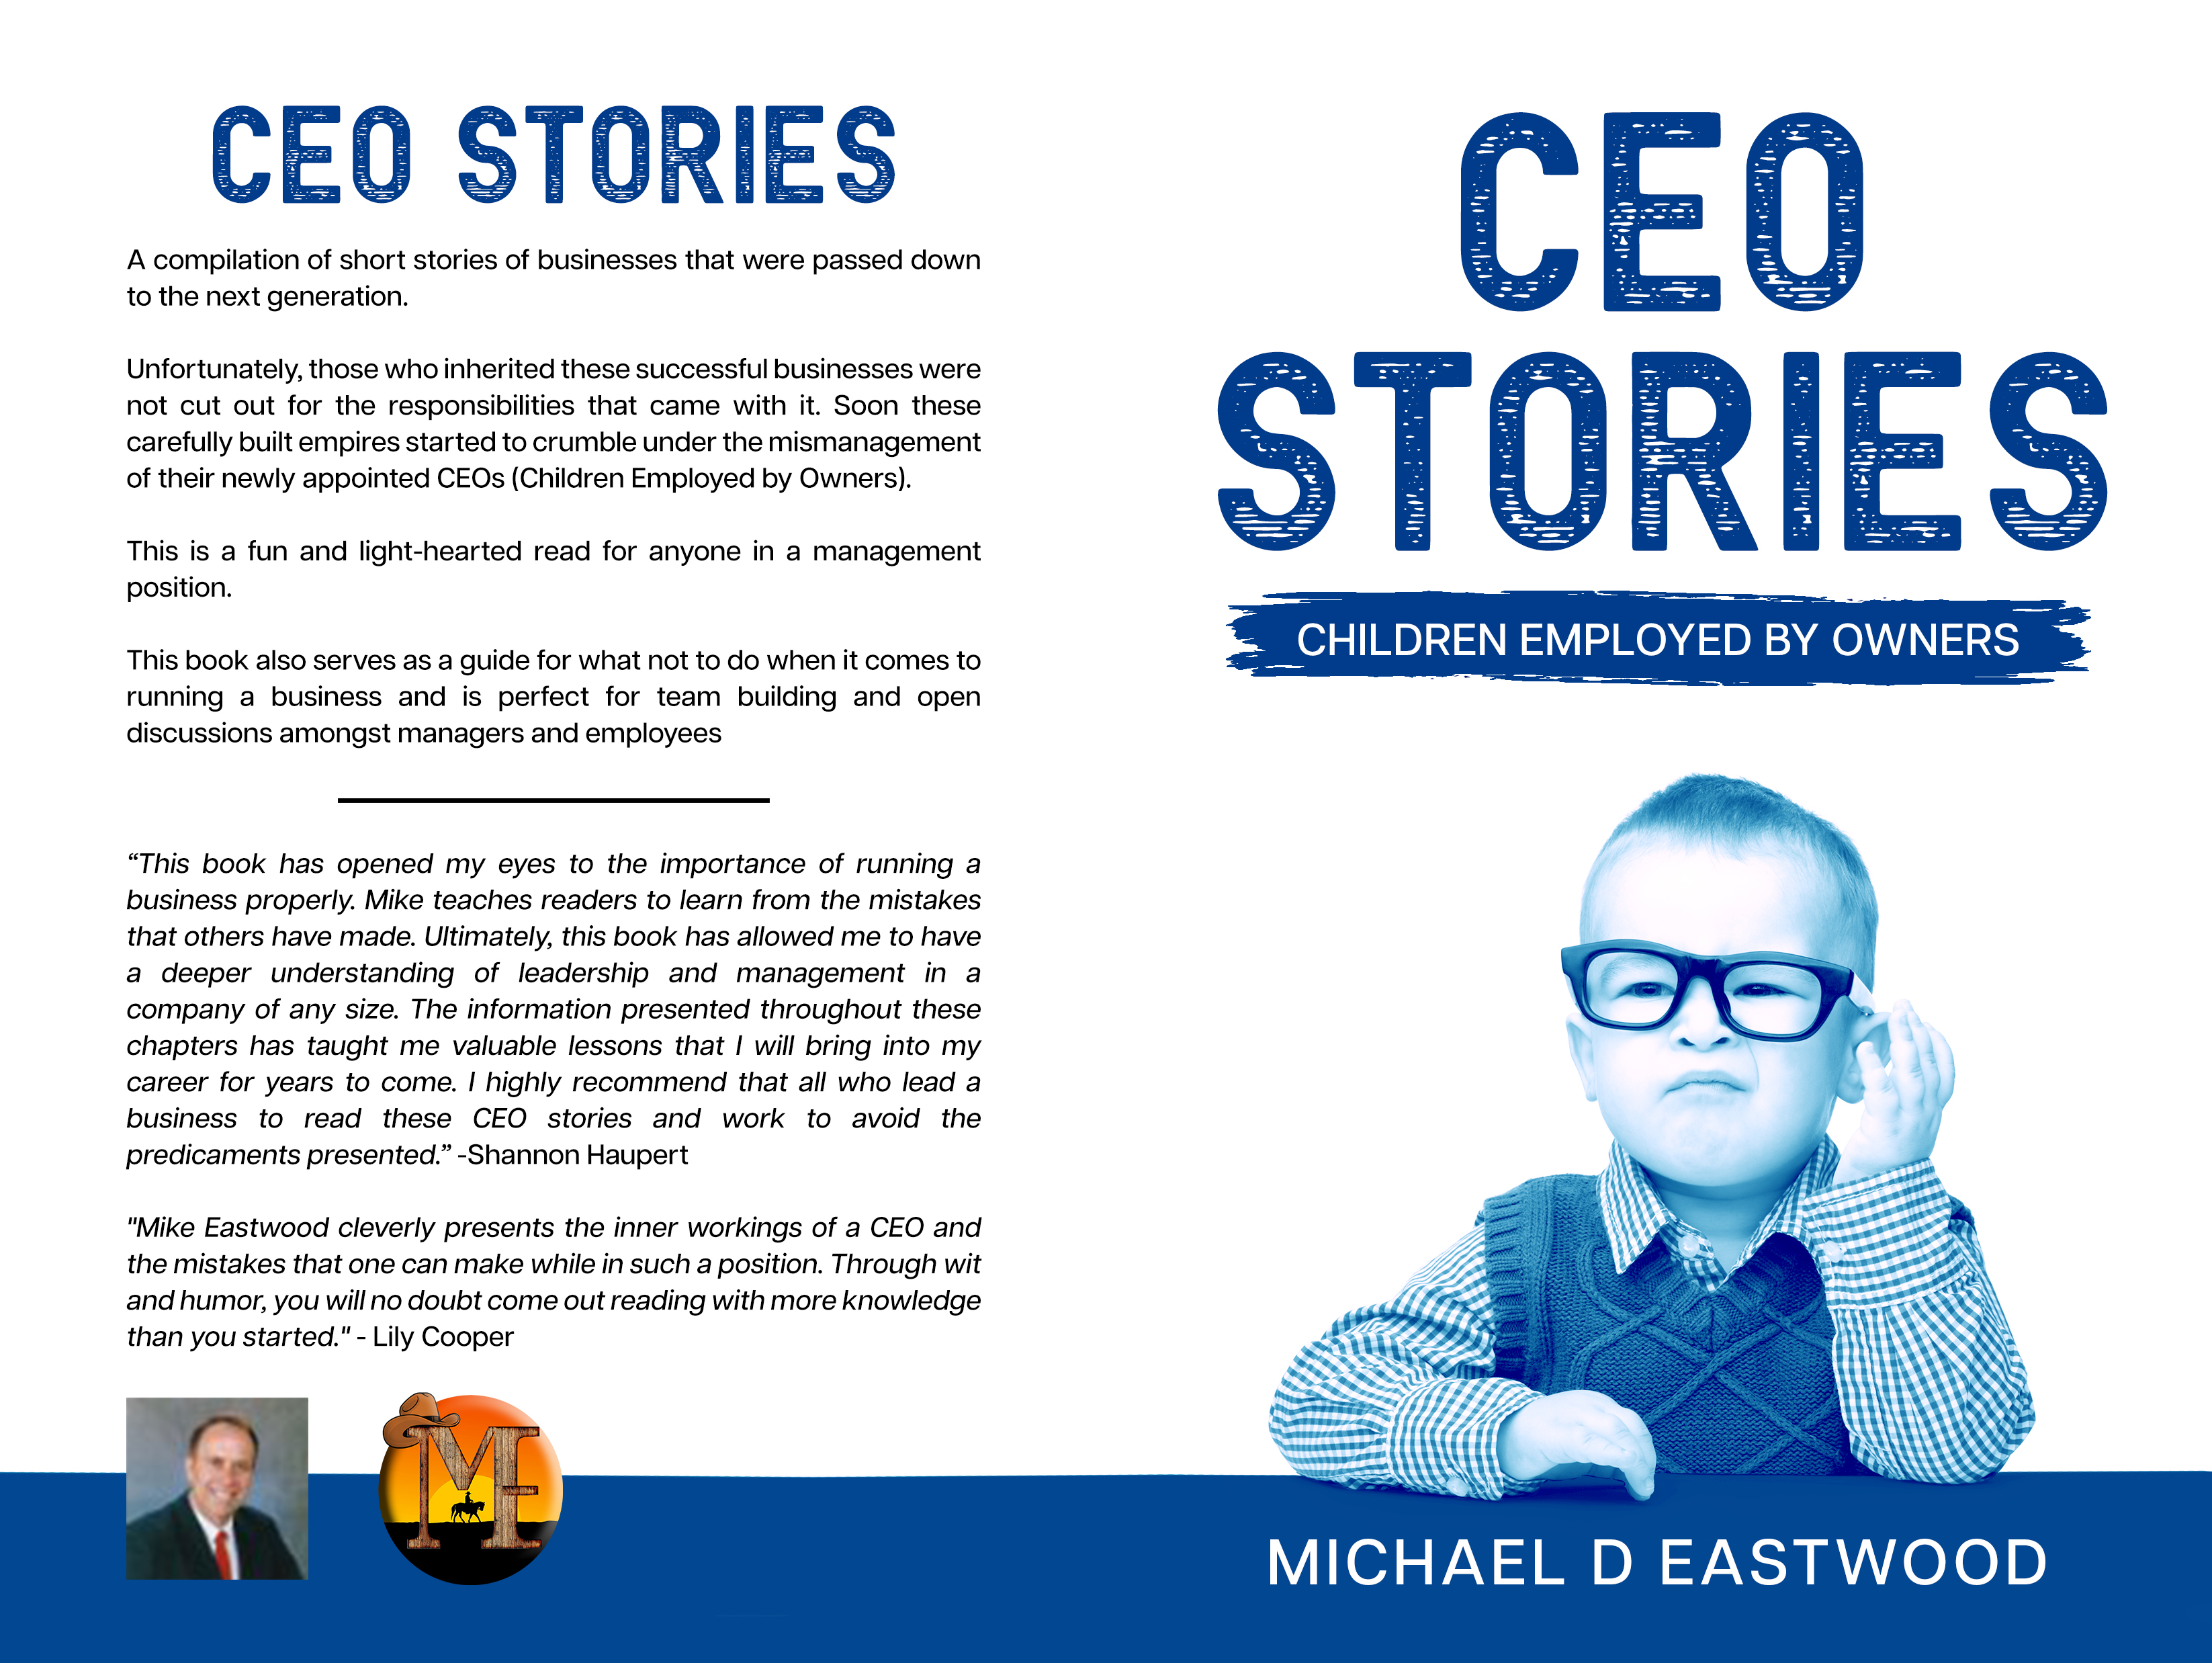 CEO-Stories Book Now On Amazon